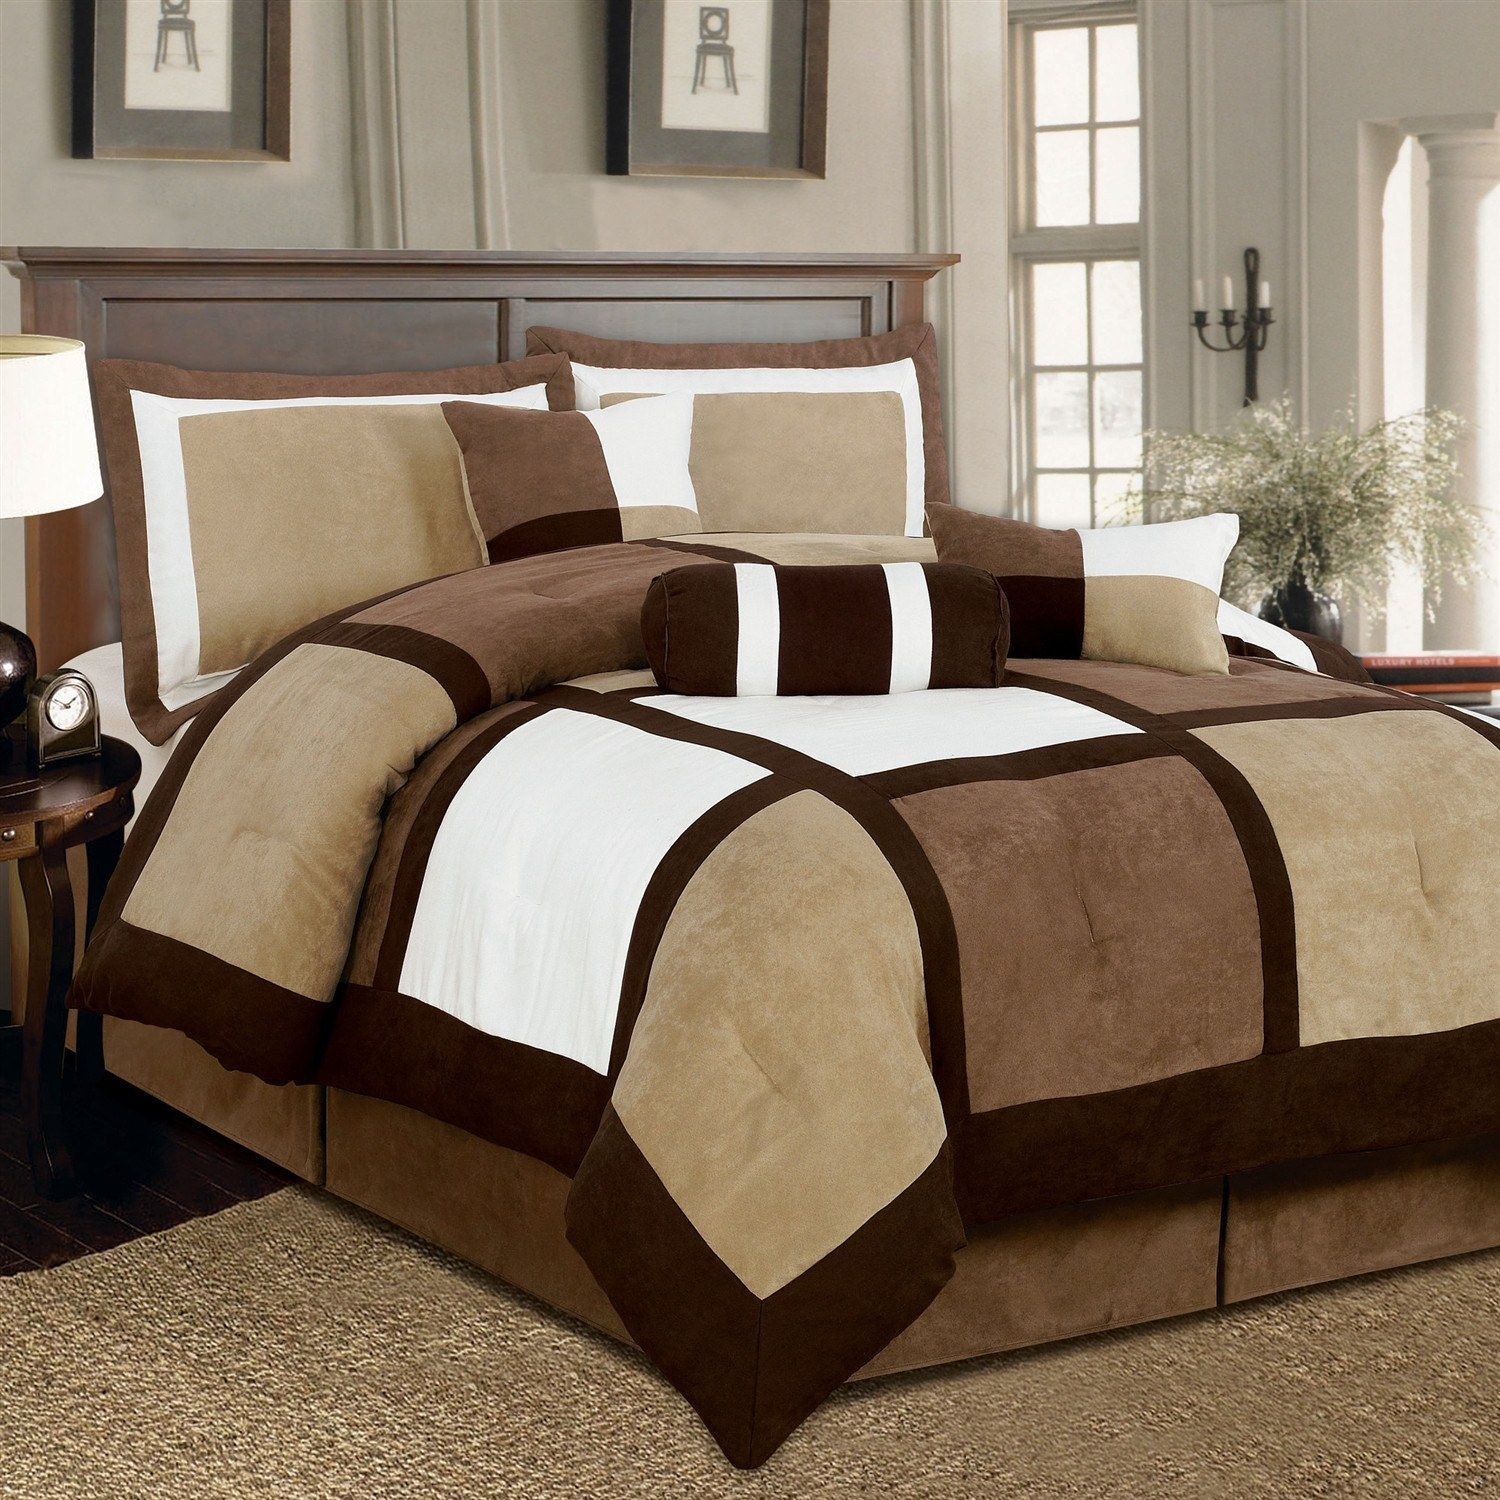 King Size 7 Piece Bed In A Bag Patchwork Comforter Set In Brown